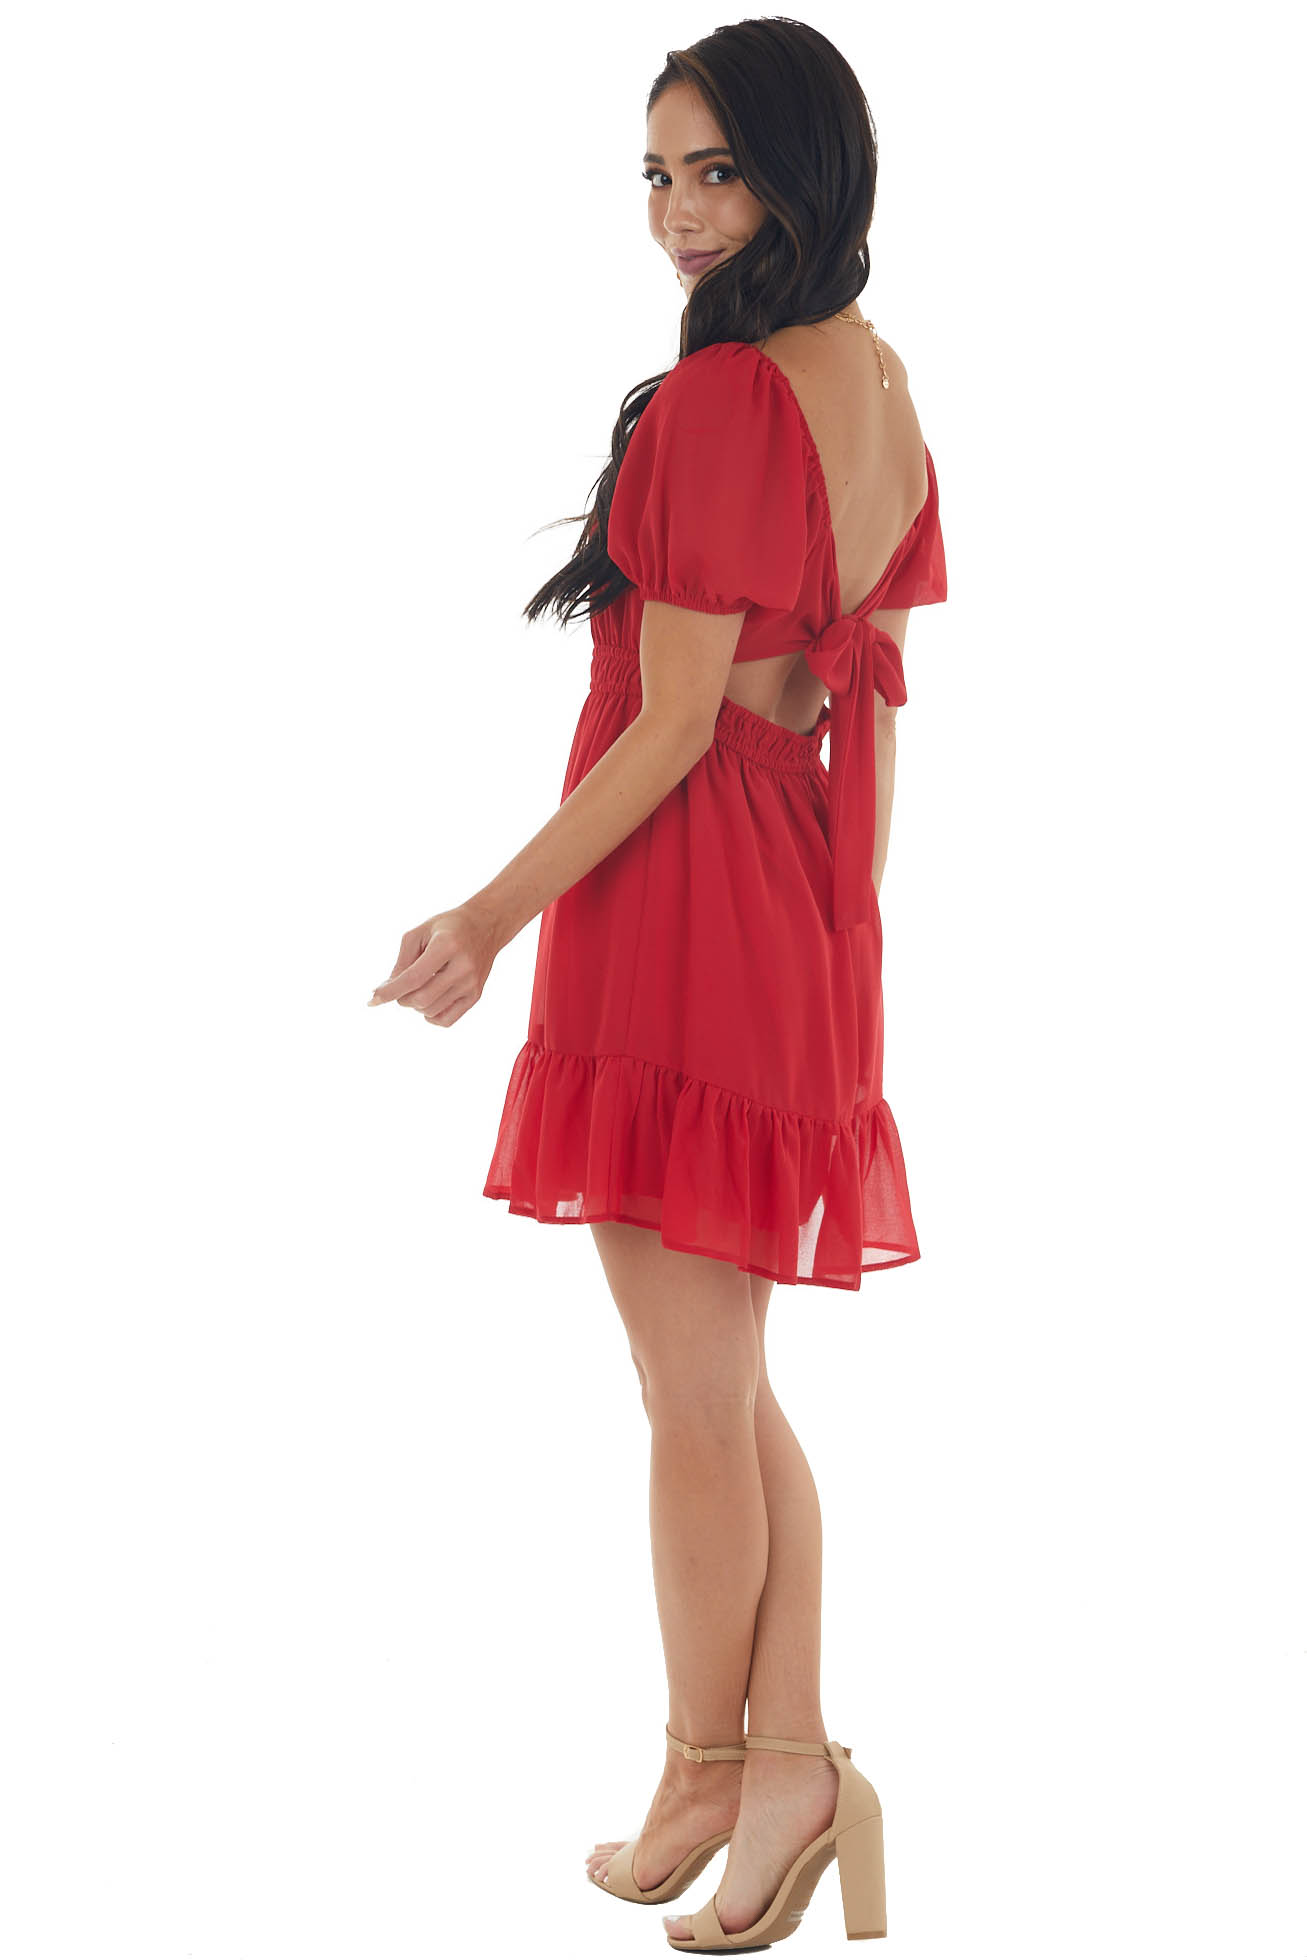 Ruby Red Mini Dress with Back Tie and Cutout